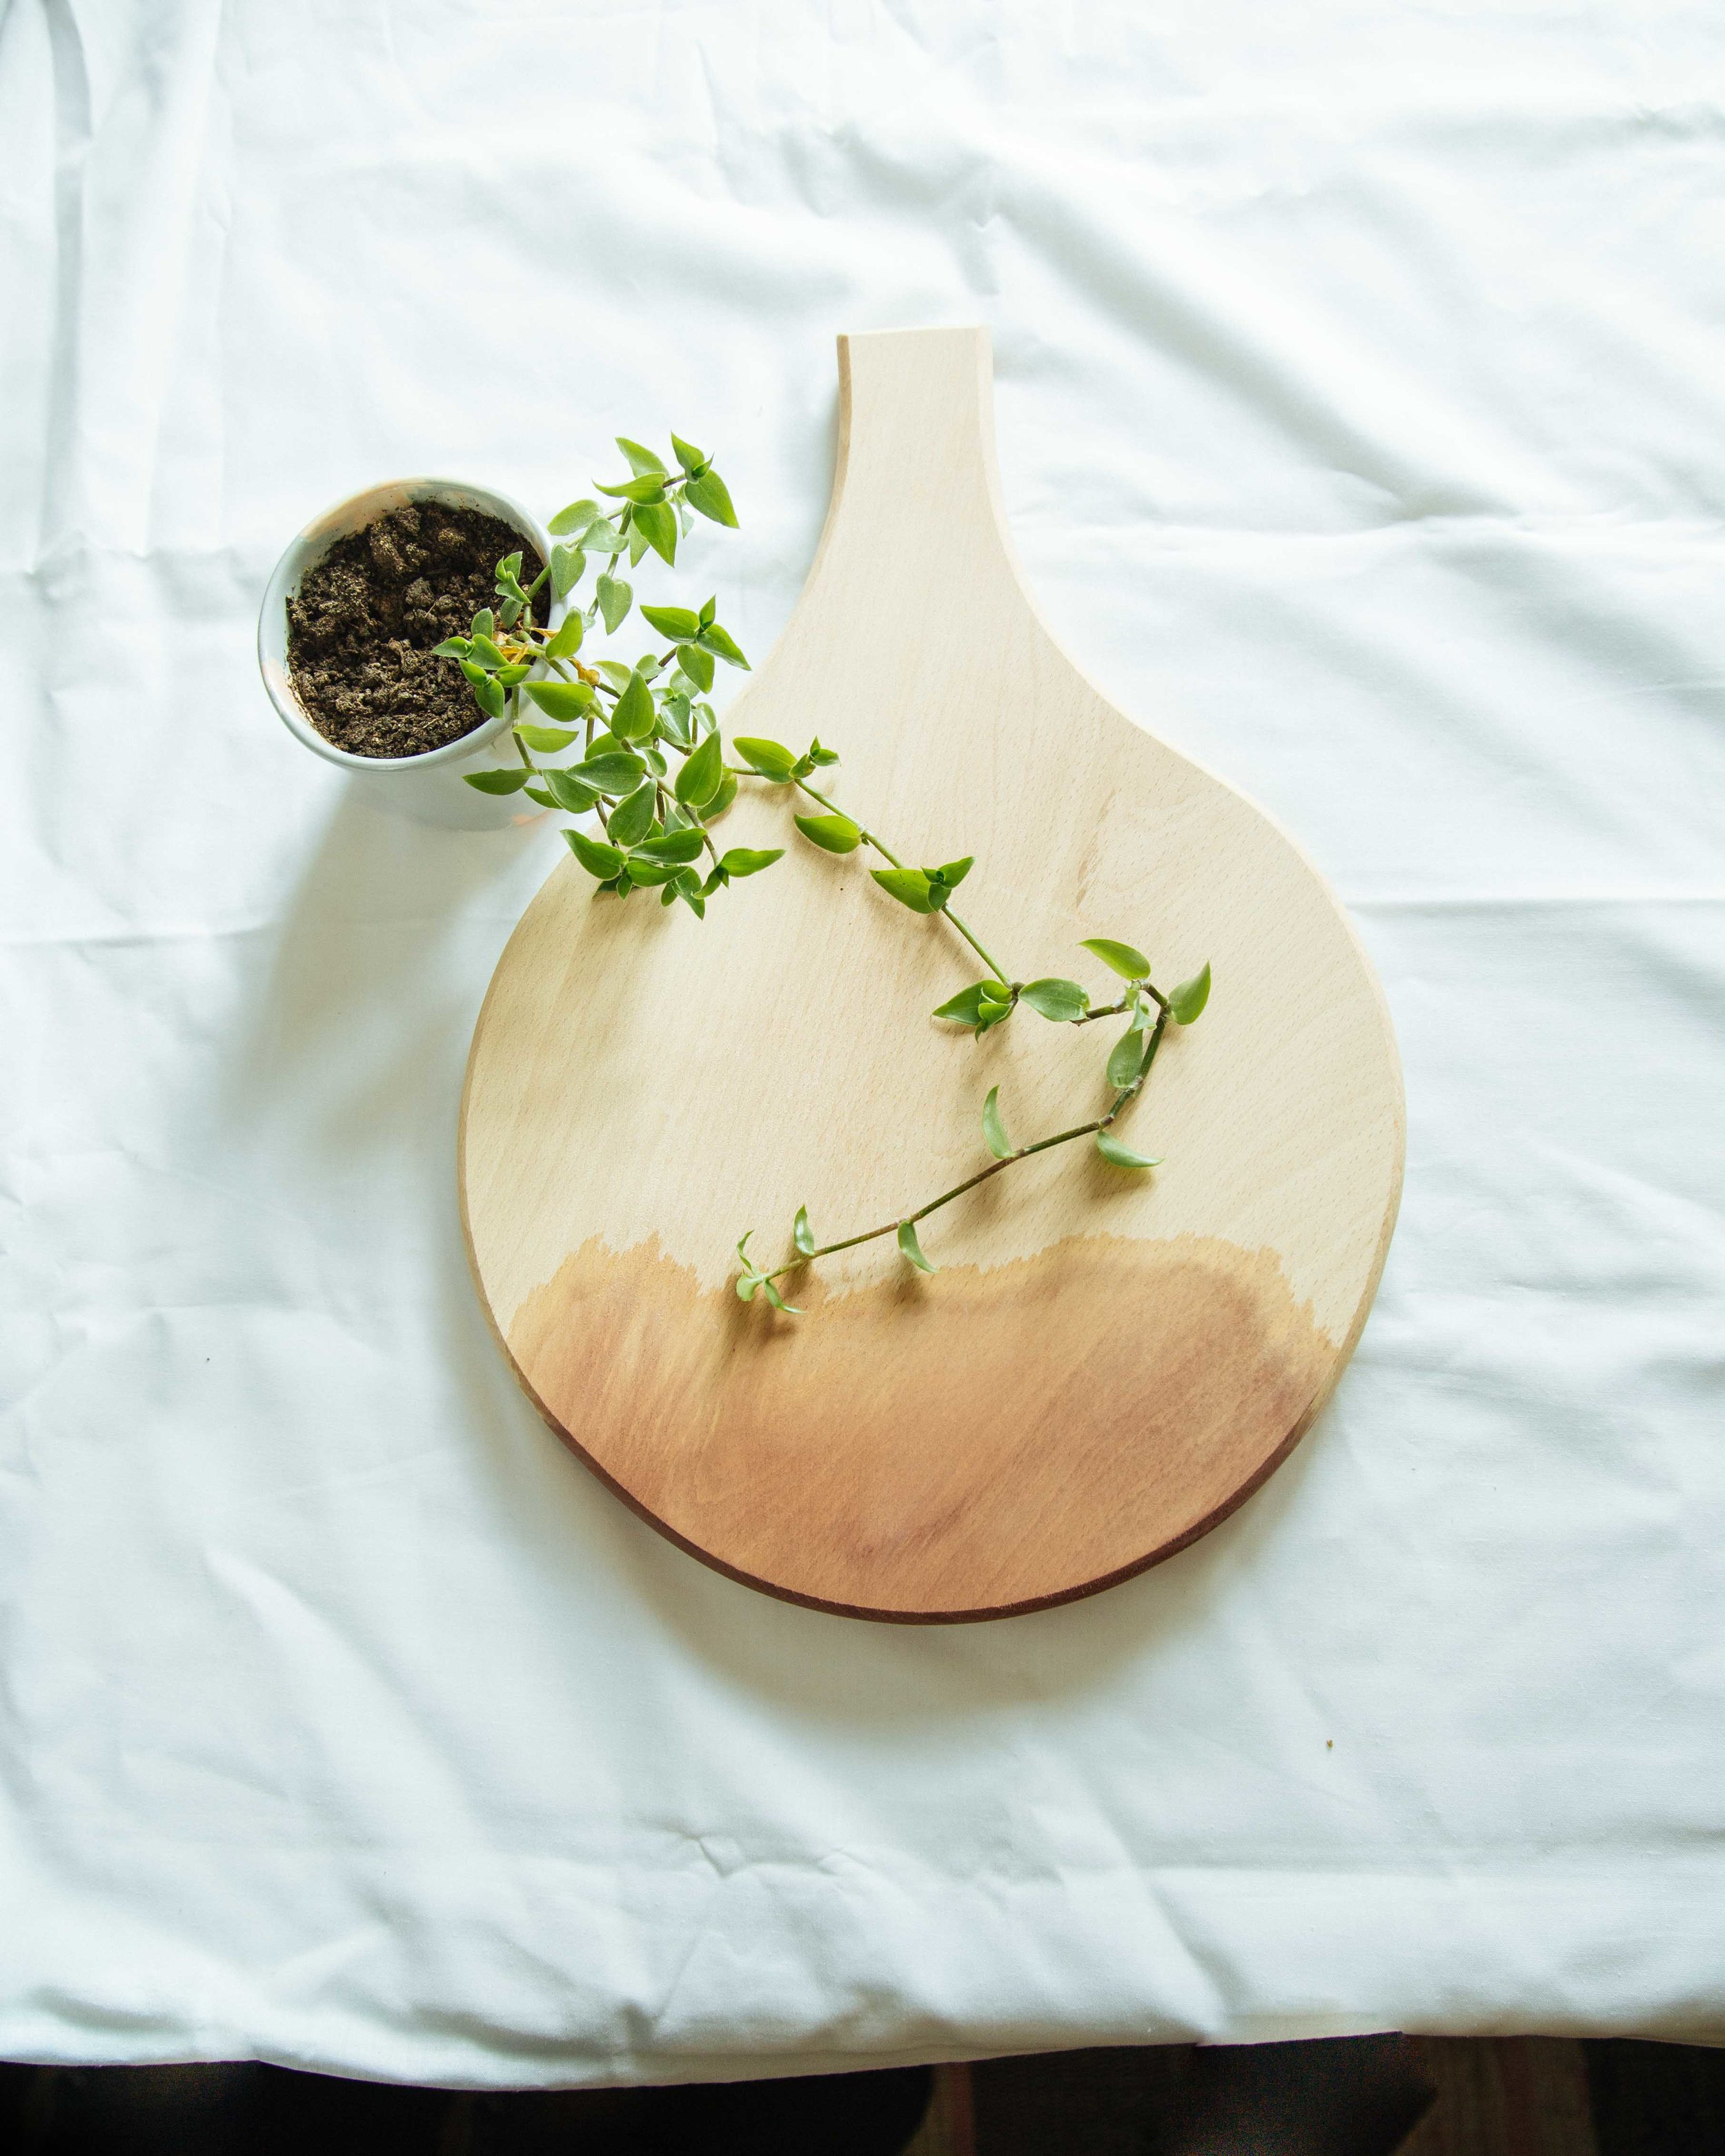 Sugo+Lab+Handcrafted+Wooden+CHOPPING+BOARD+SERVING-2051.jpg